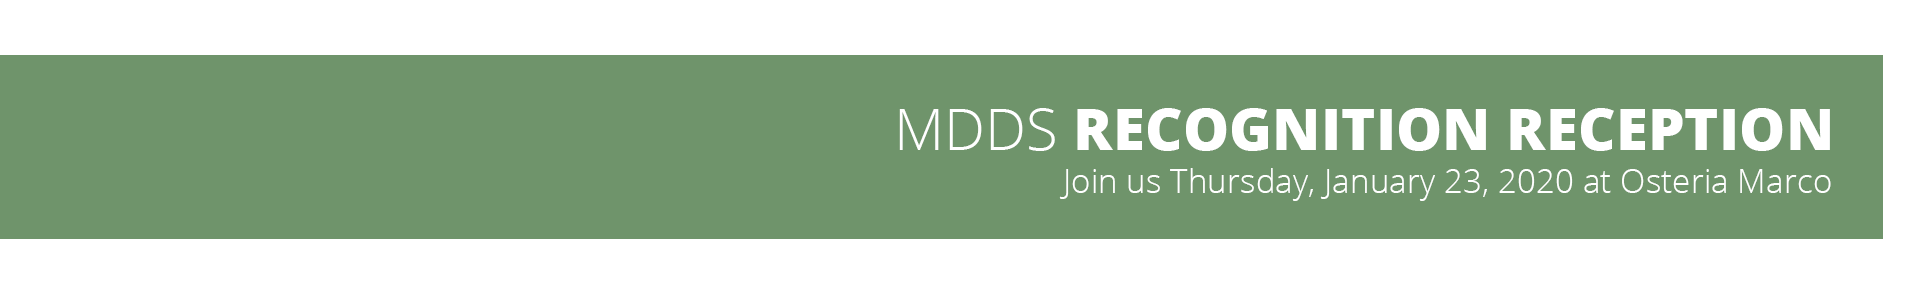 MDDS Recognition Reception - Join Us Thursday, January 23, 2020 at Osteria Marco